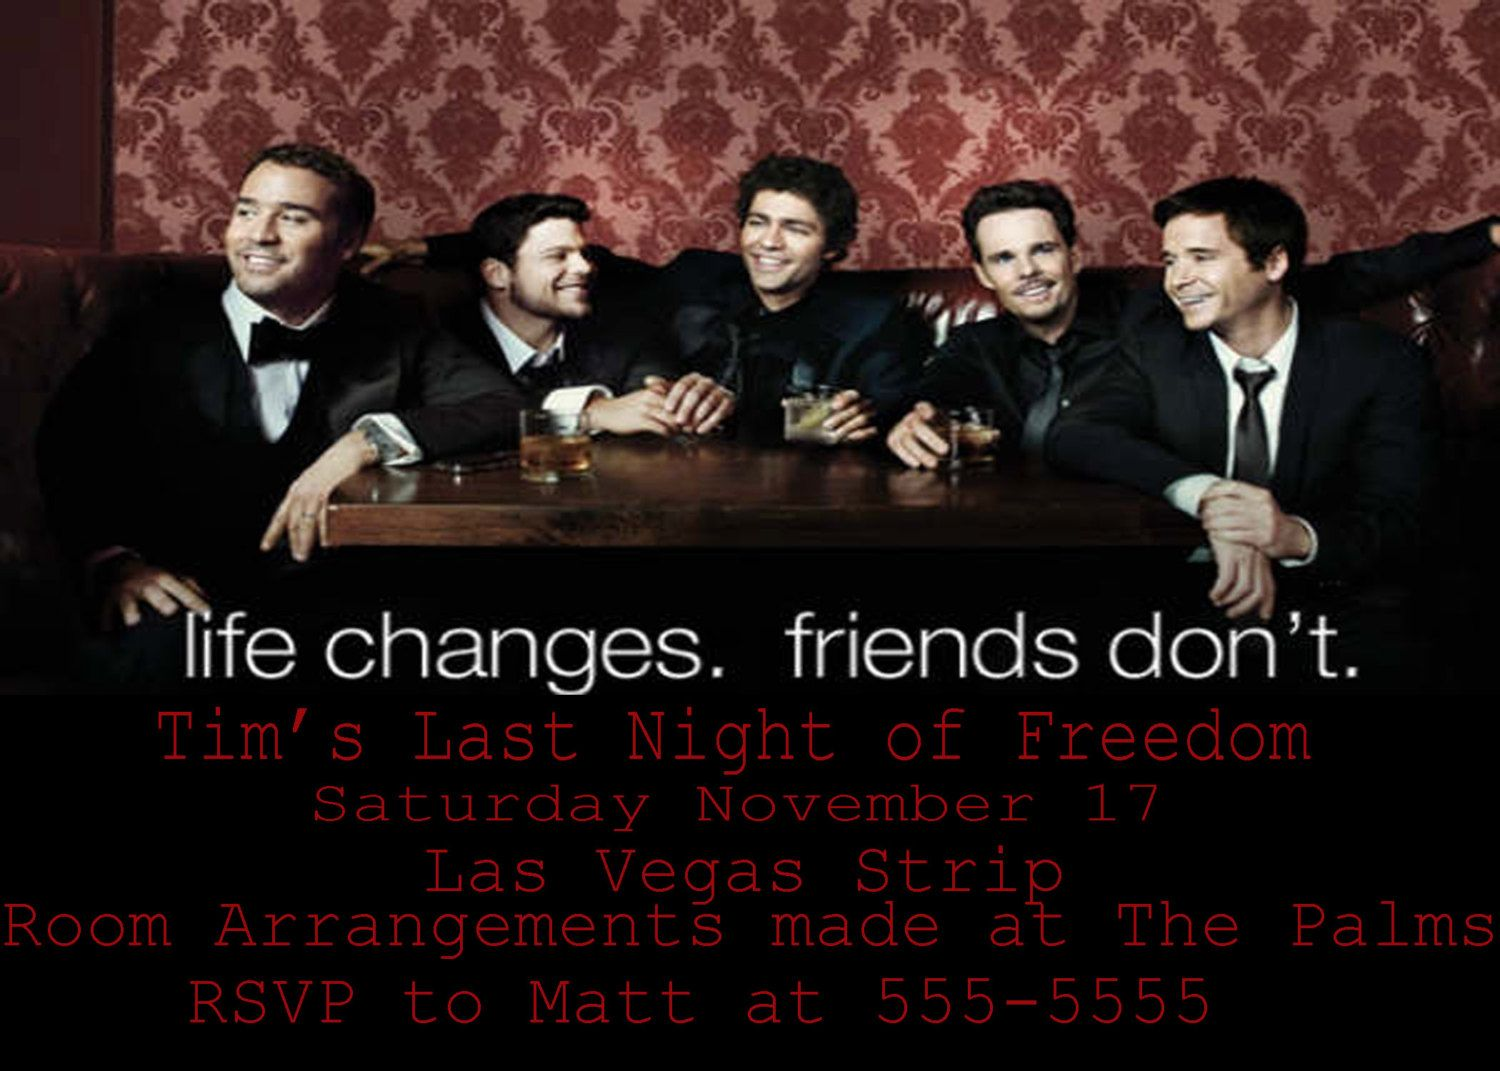 Download Bachelor Party Invites – Wording for Bachelor Party Invitations